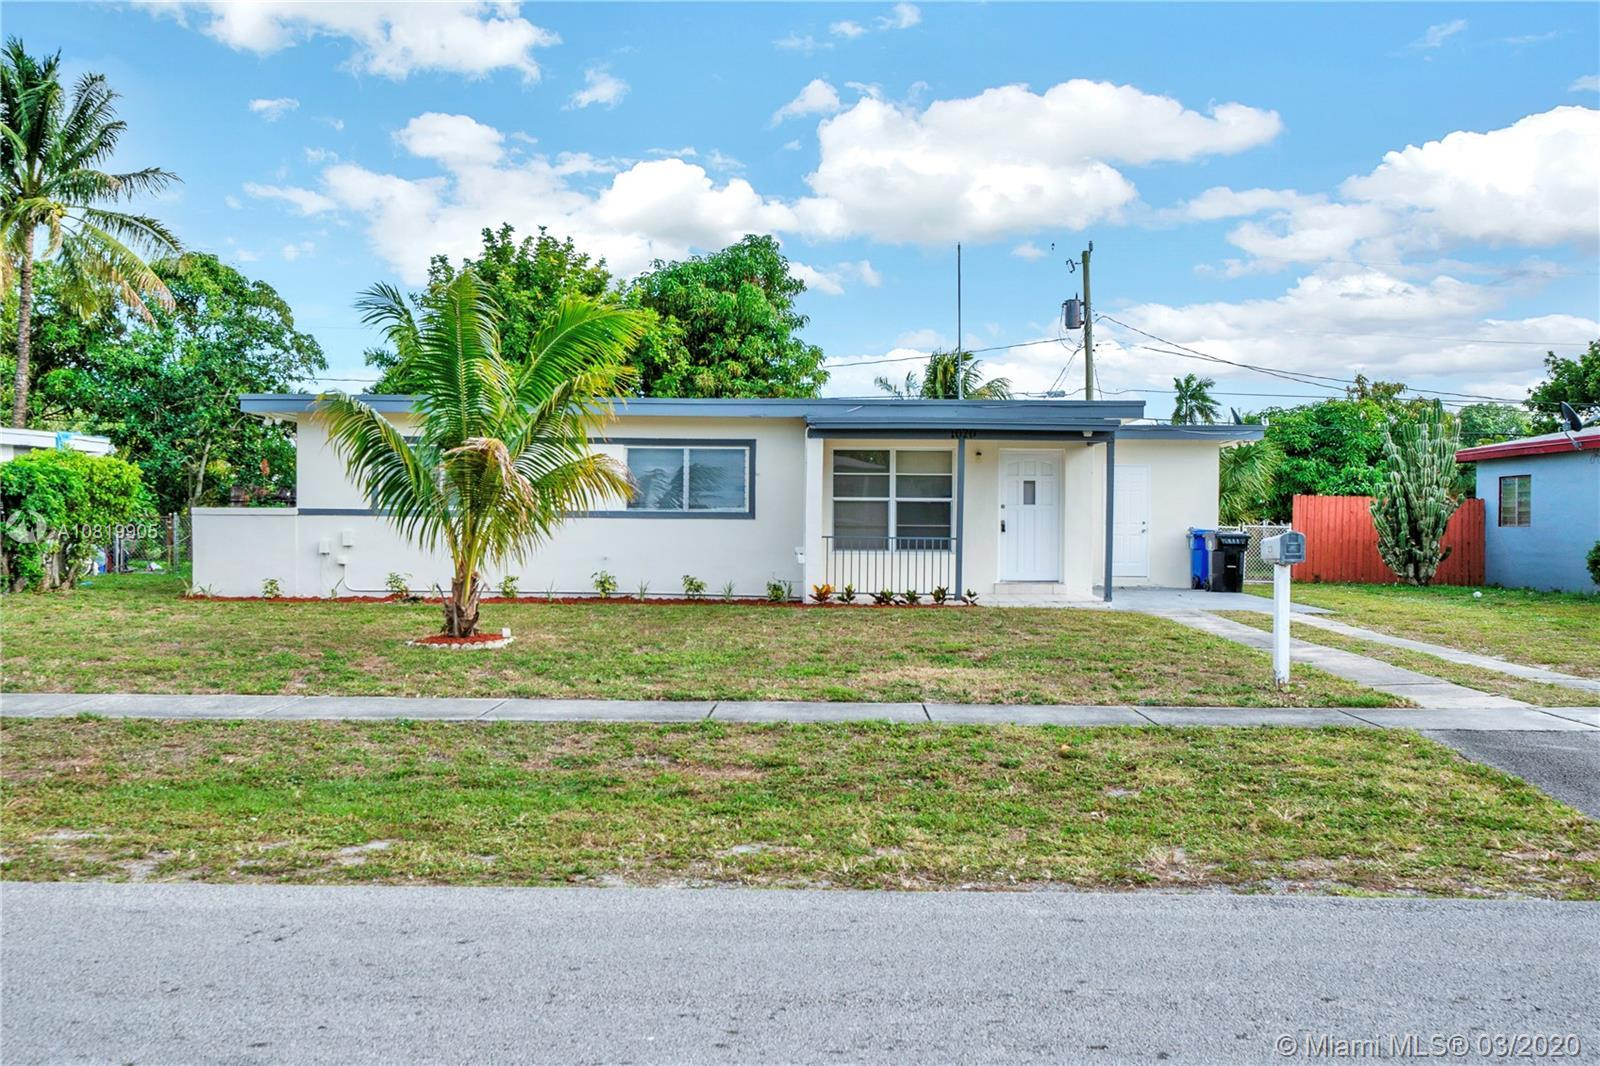 Turnkey Investor Special!!! Beautifully updated Turn key cash flow Investment property 3 Bedrooms, 1